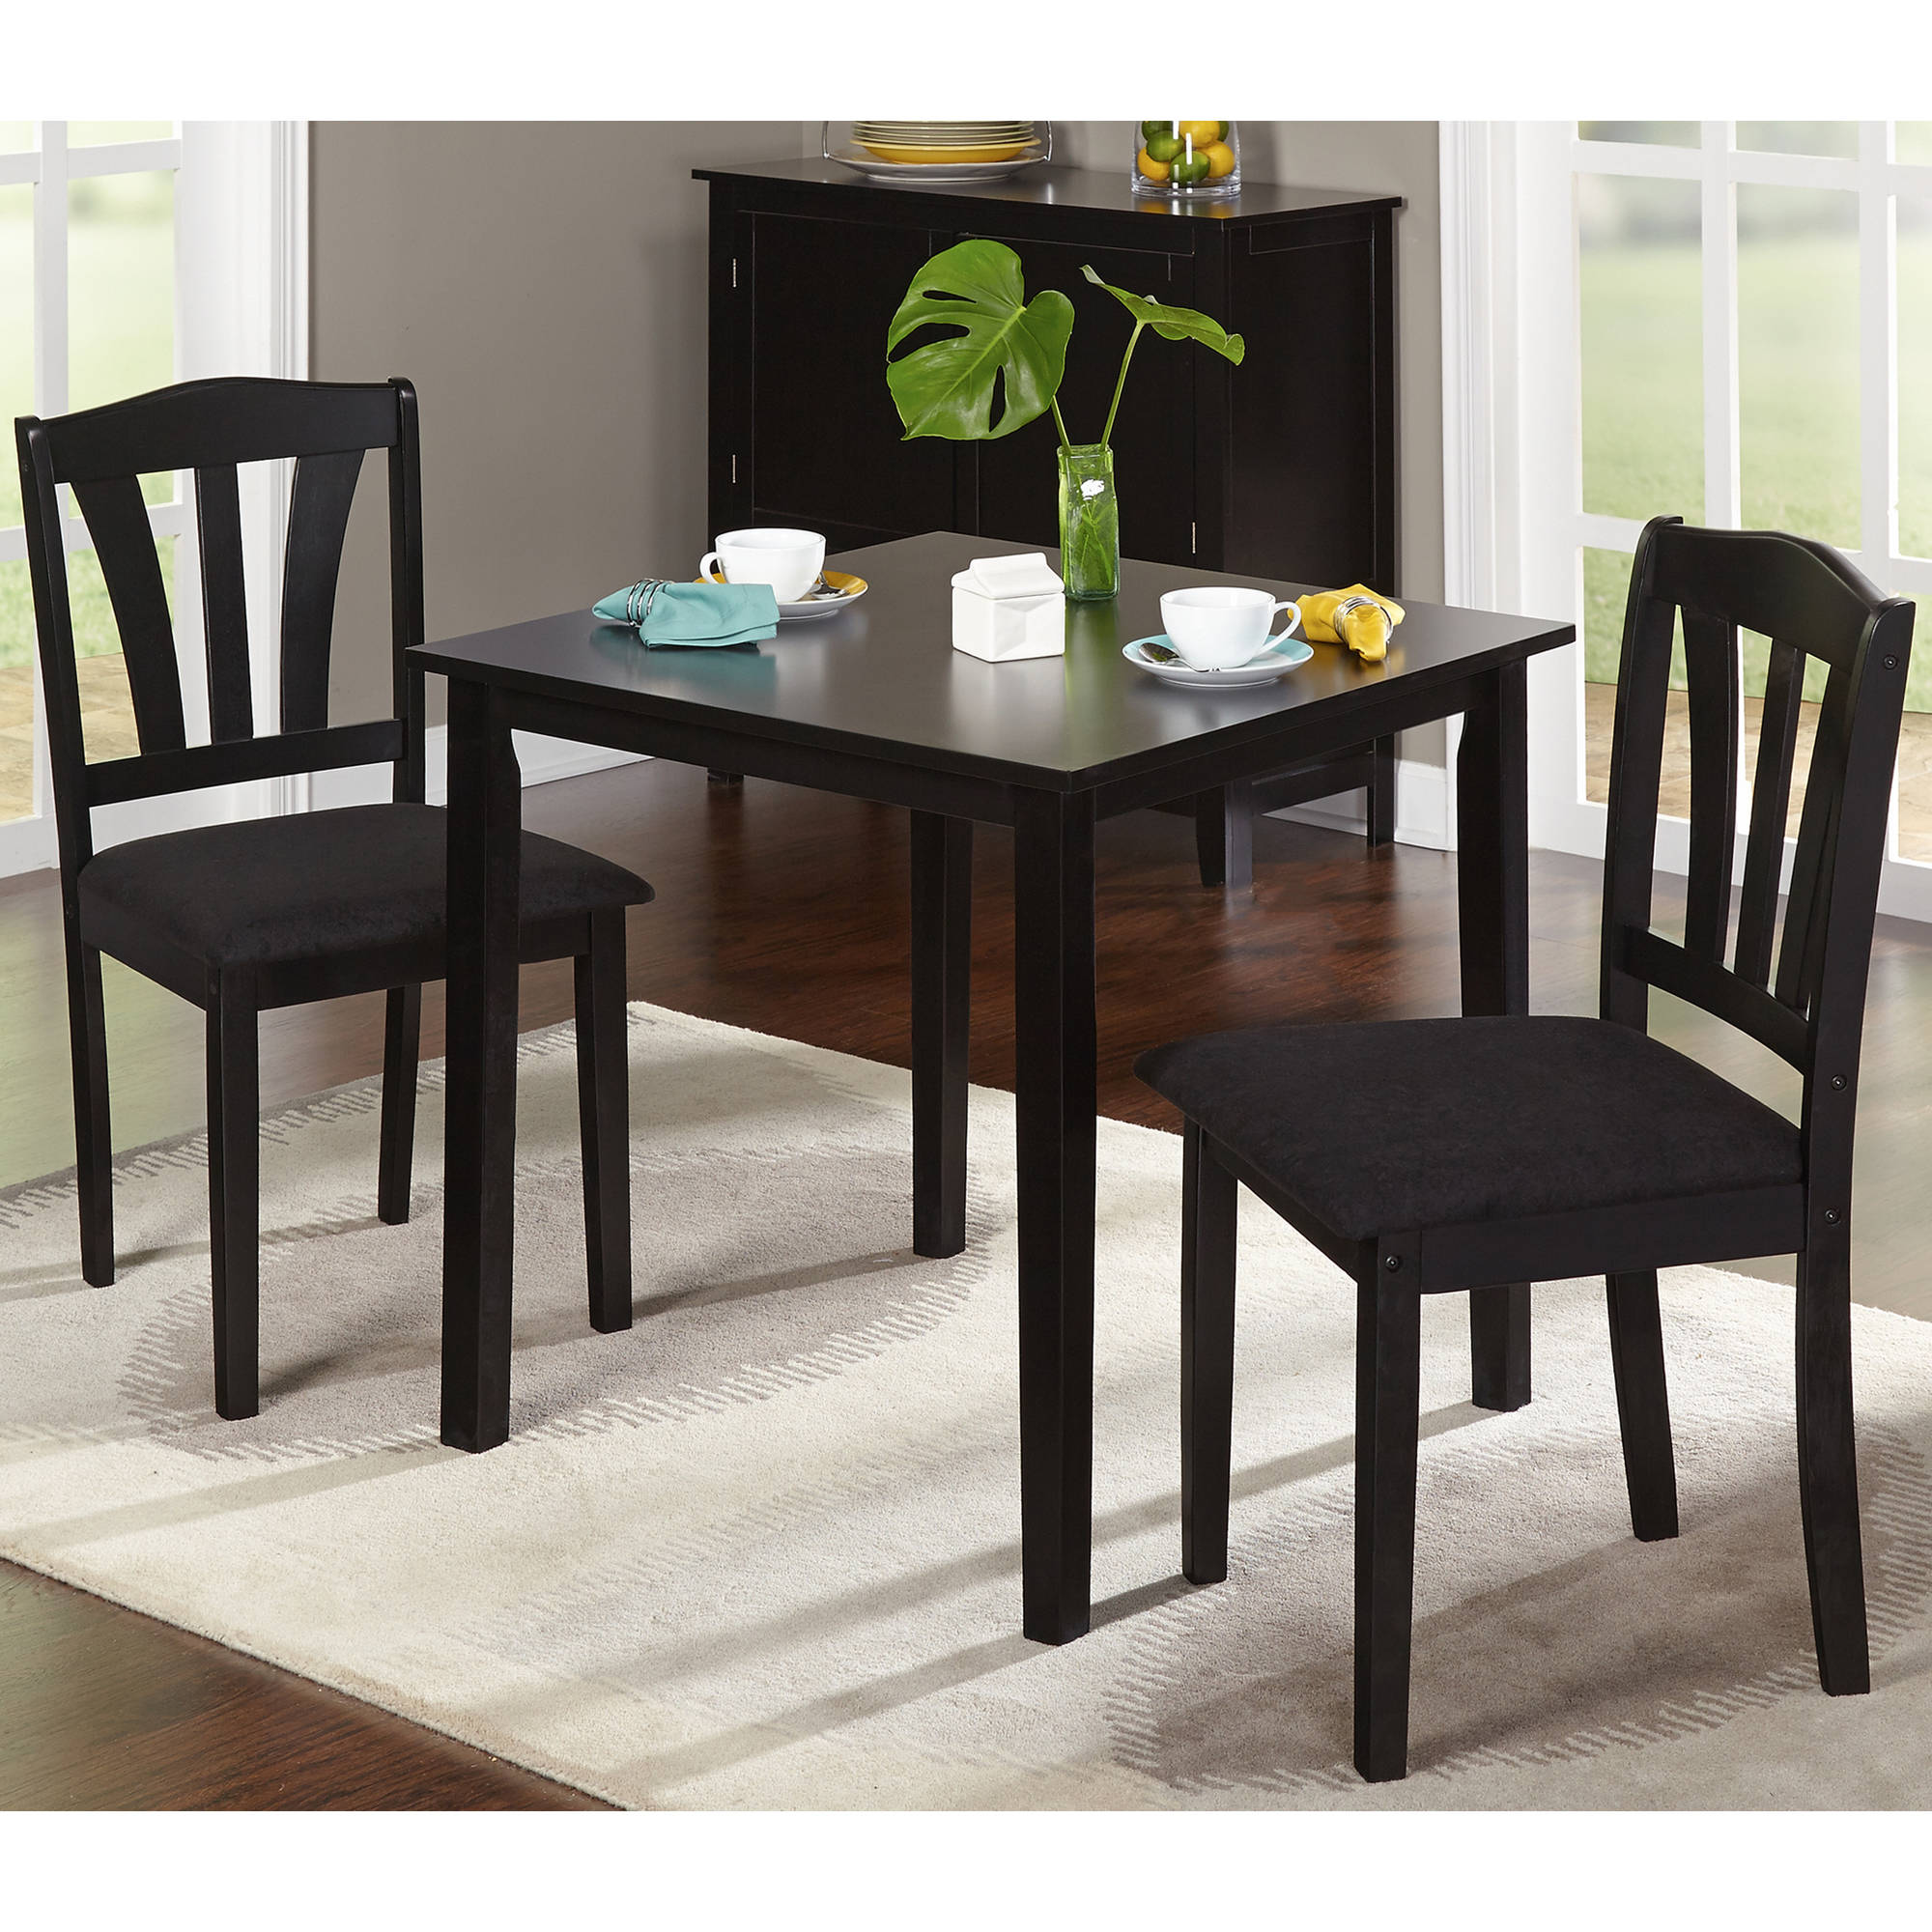 High Quality Metropolitan 3 Piece Dining Set, Multiple Finishes